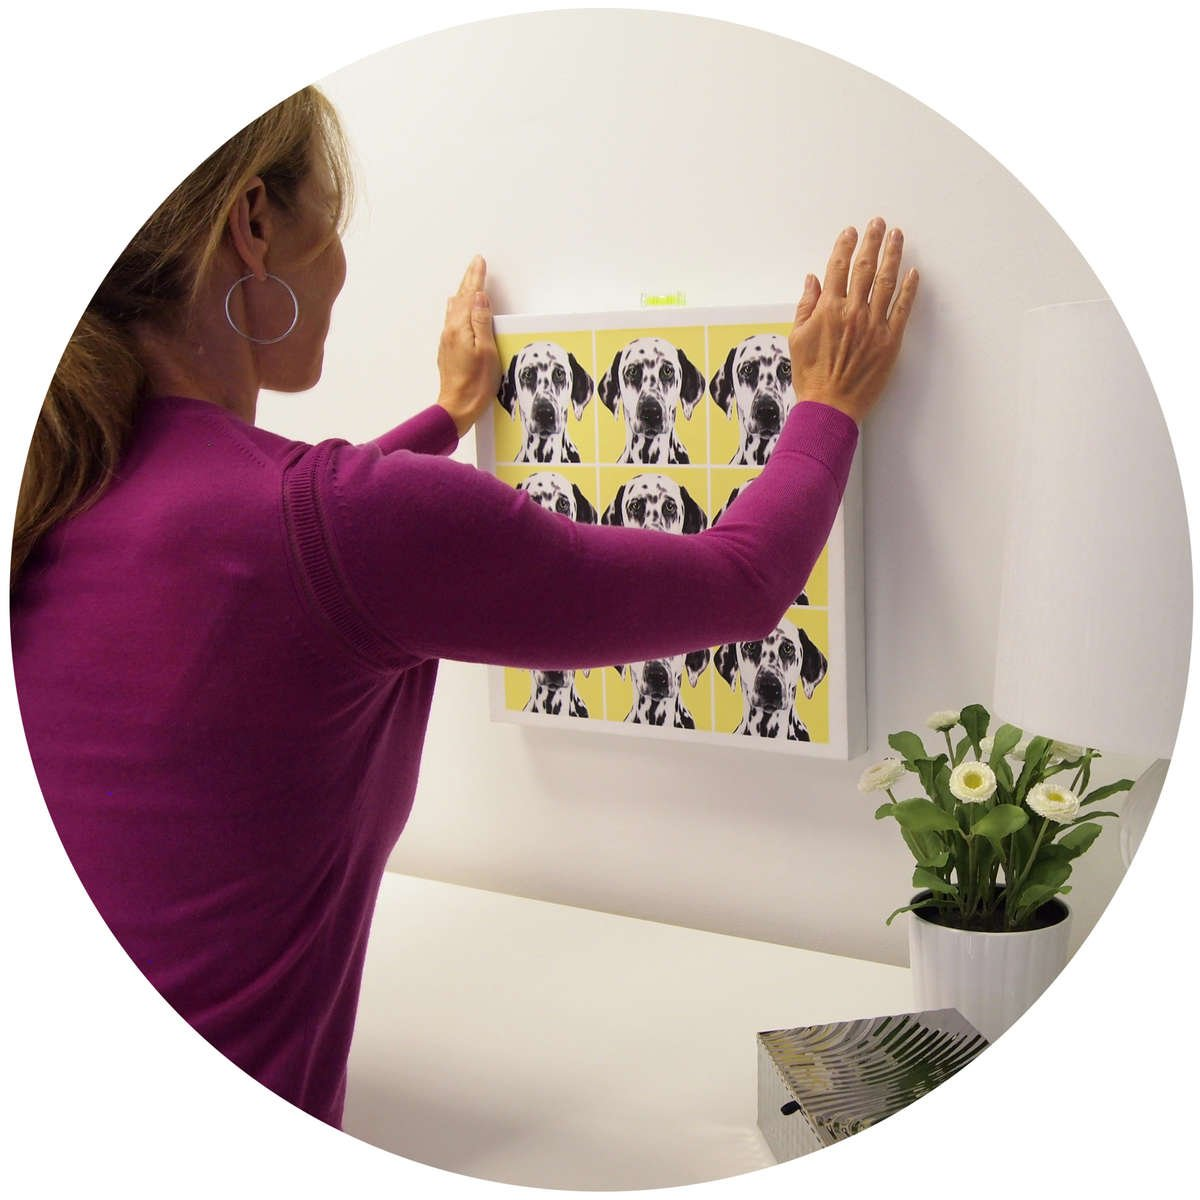 CanvasHangers make it easy to hang any canvas.